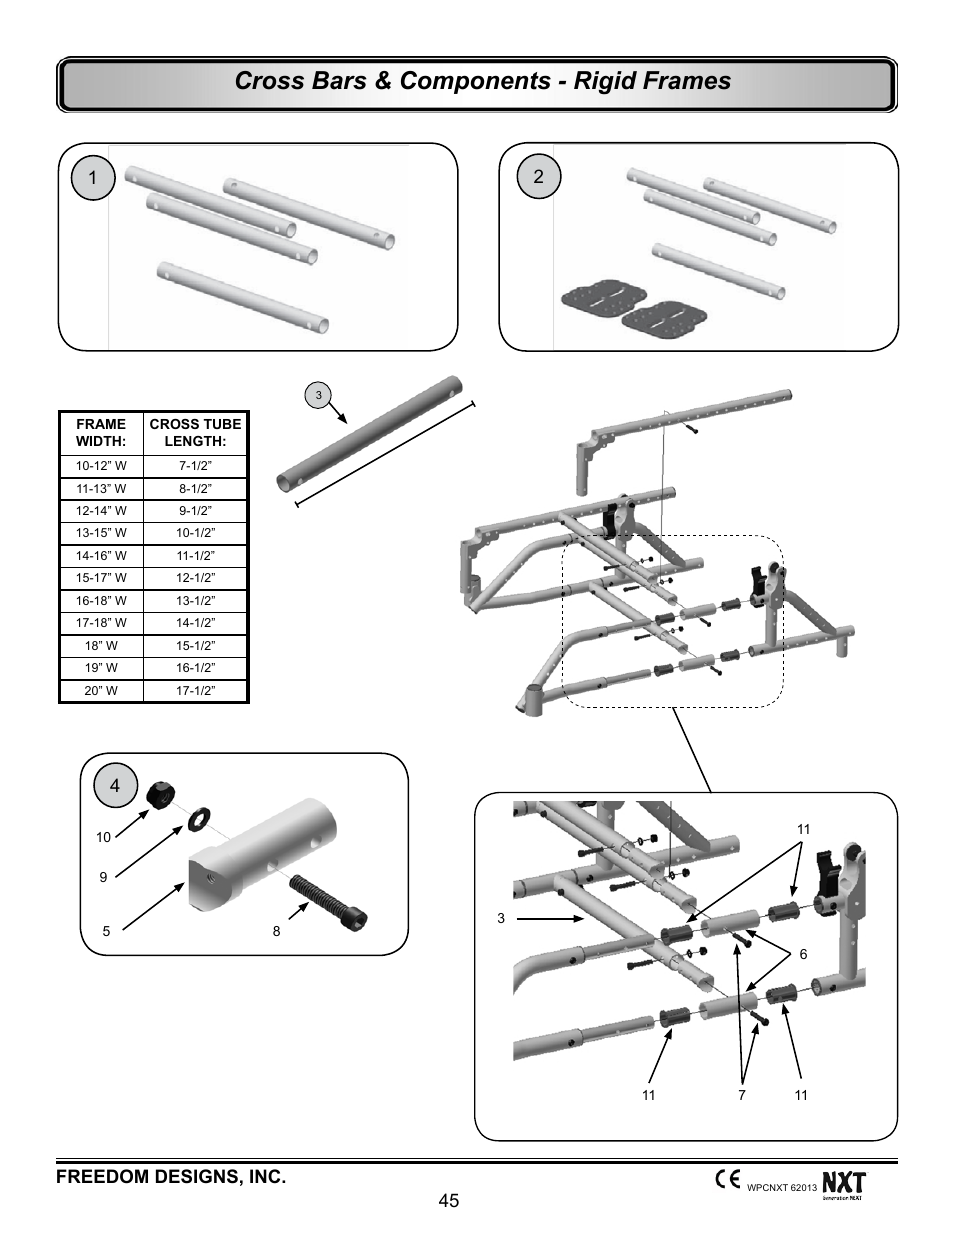 Cross bars - rigid frames, Cross bars & components - rigid frames ...